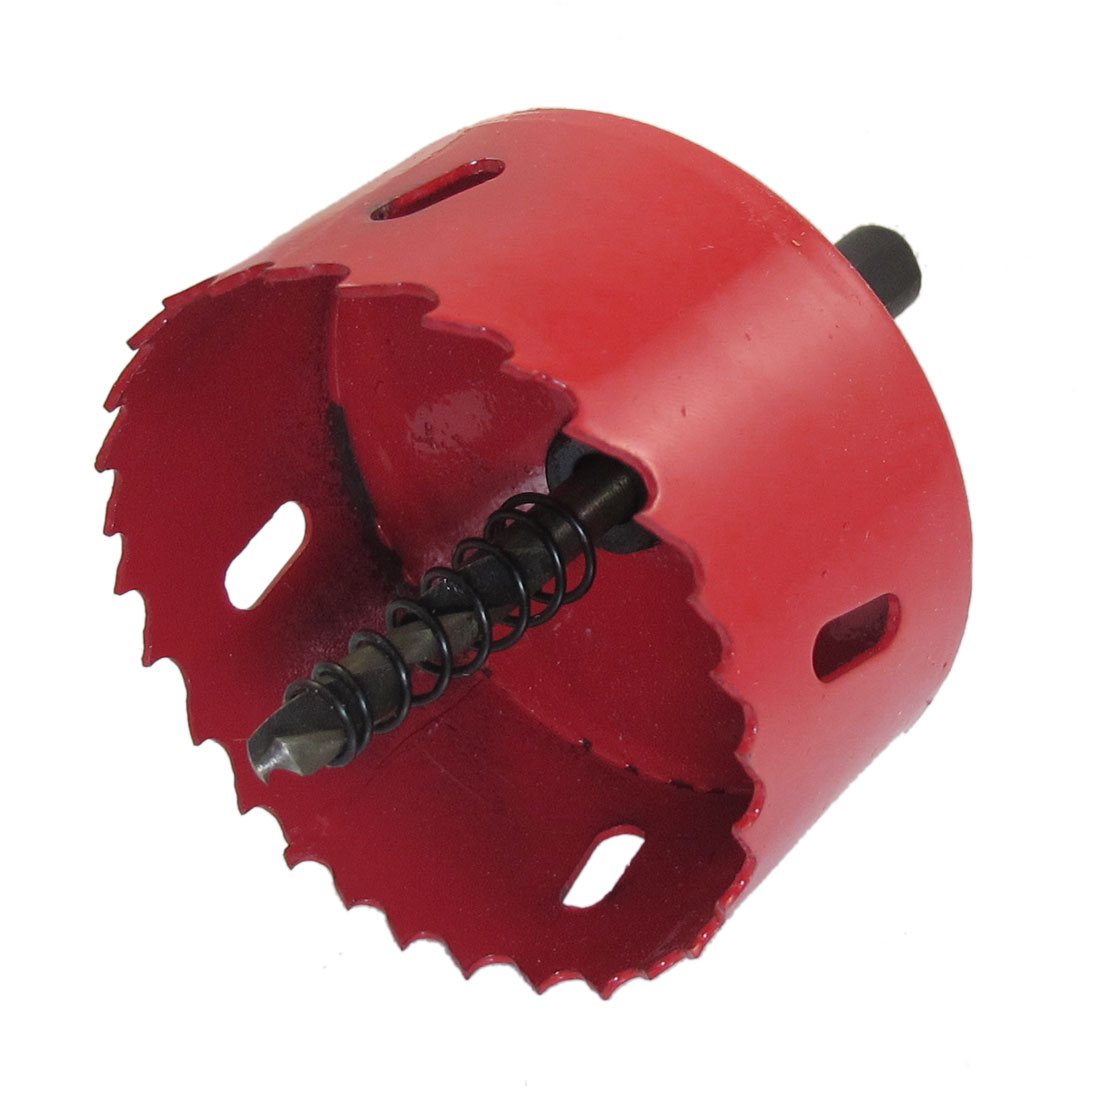 6mm Twist Drill Bit Wood Iron Cutting 70mm Diameter Bimetal Hole Saw Red